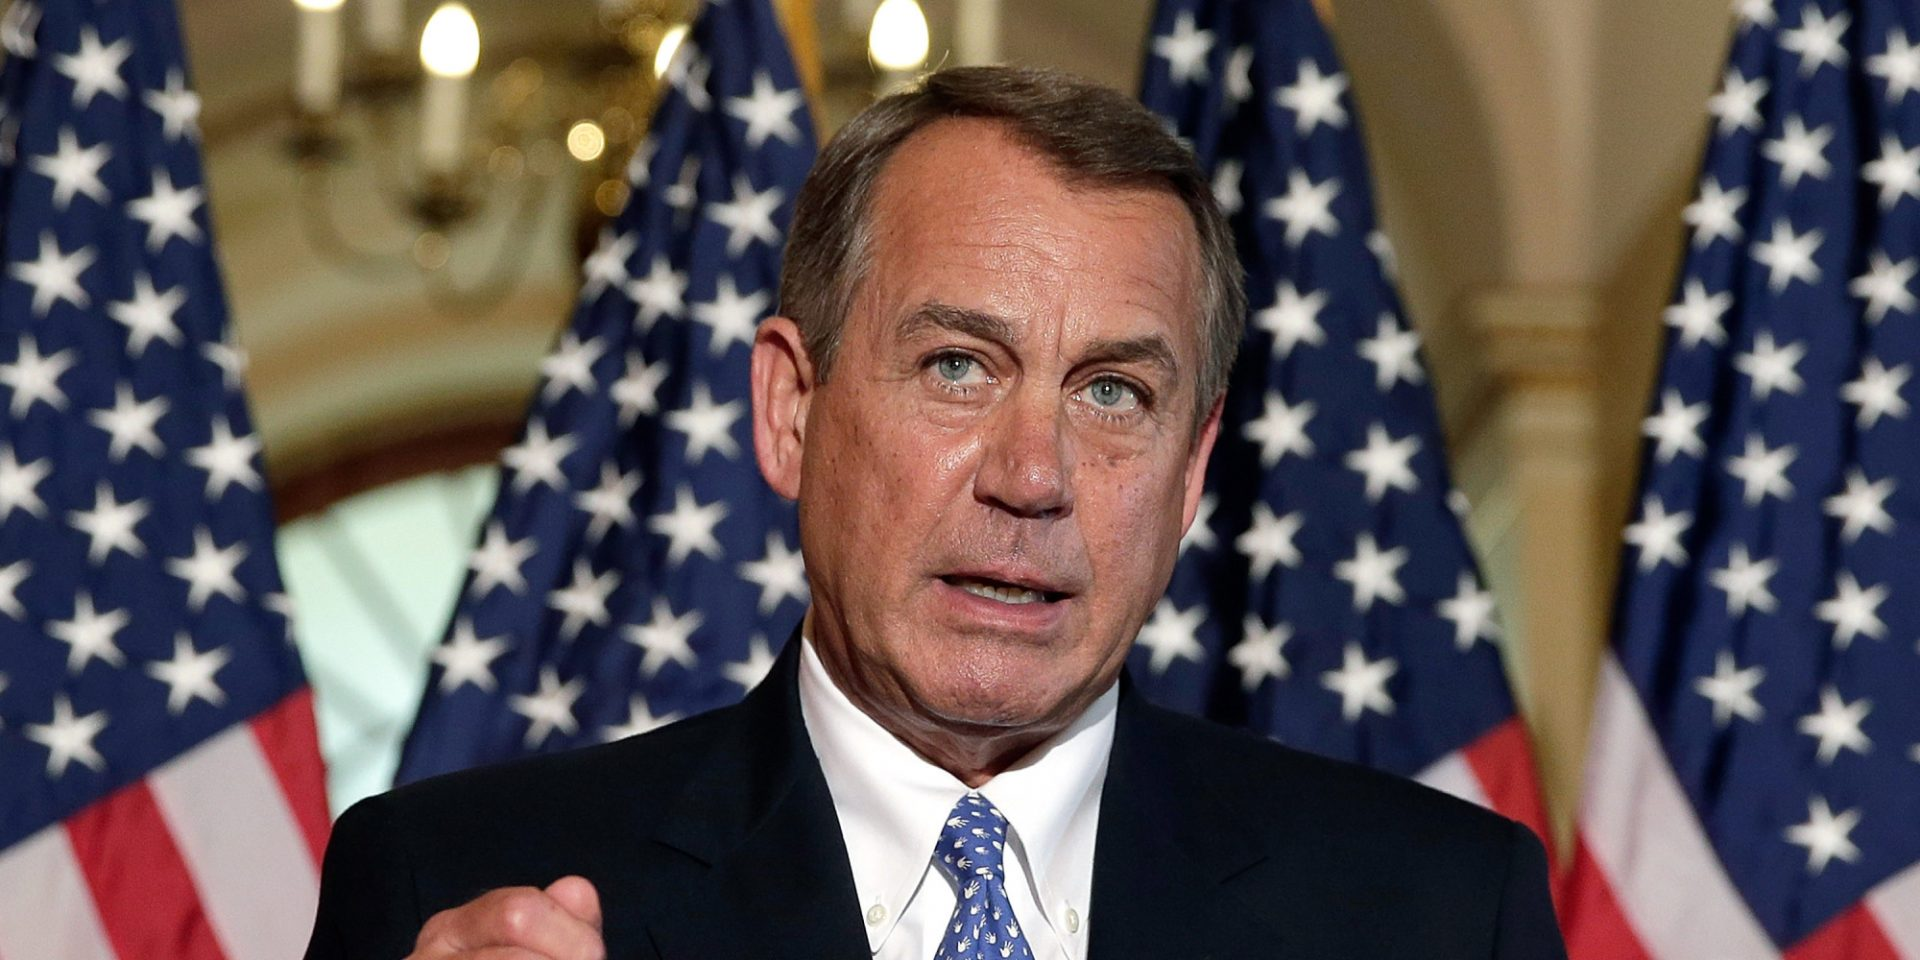 Boehner Resigns – Conservatives Cheer